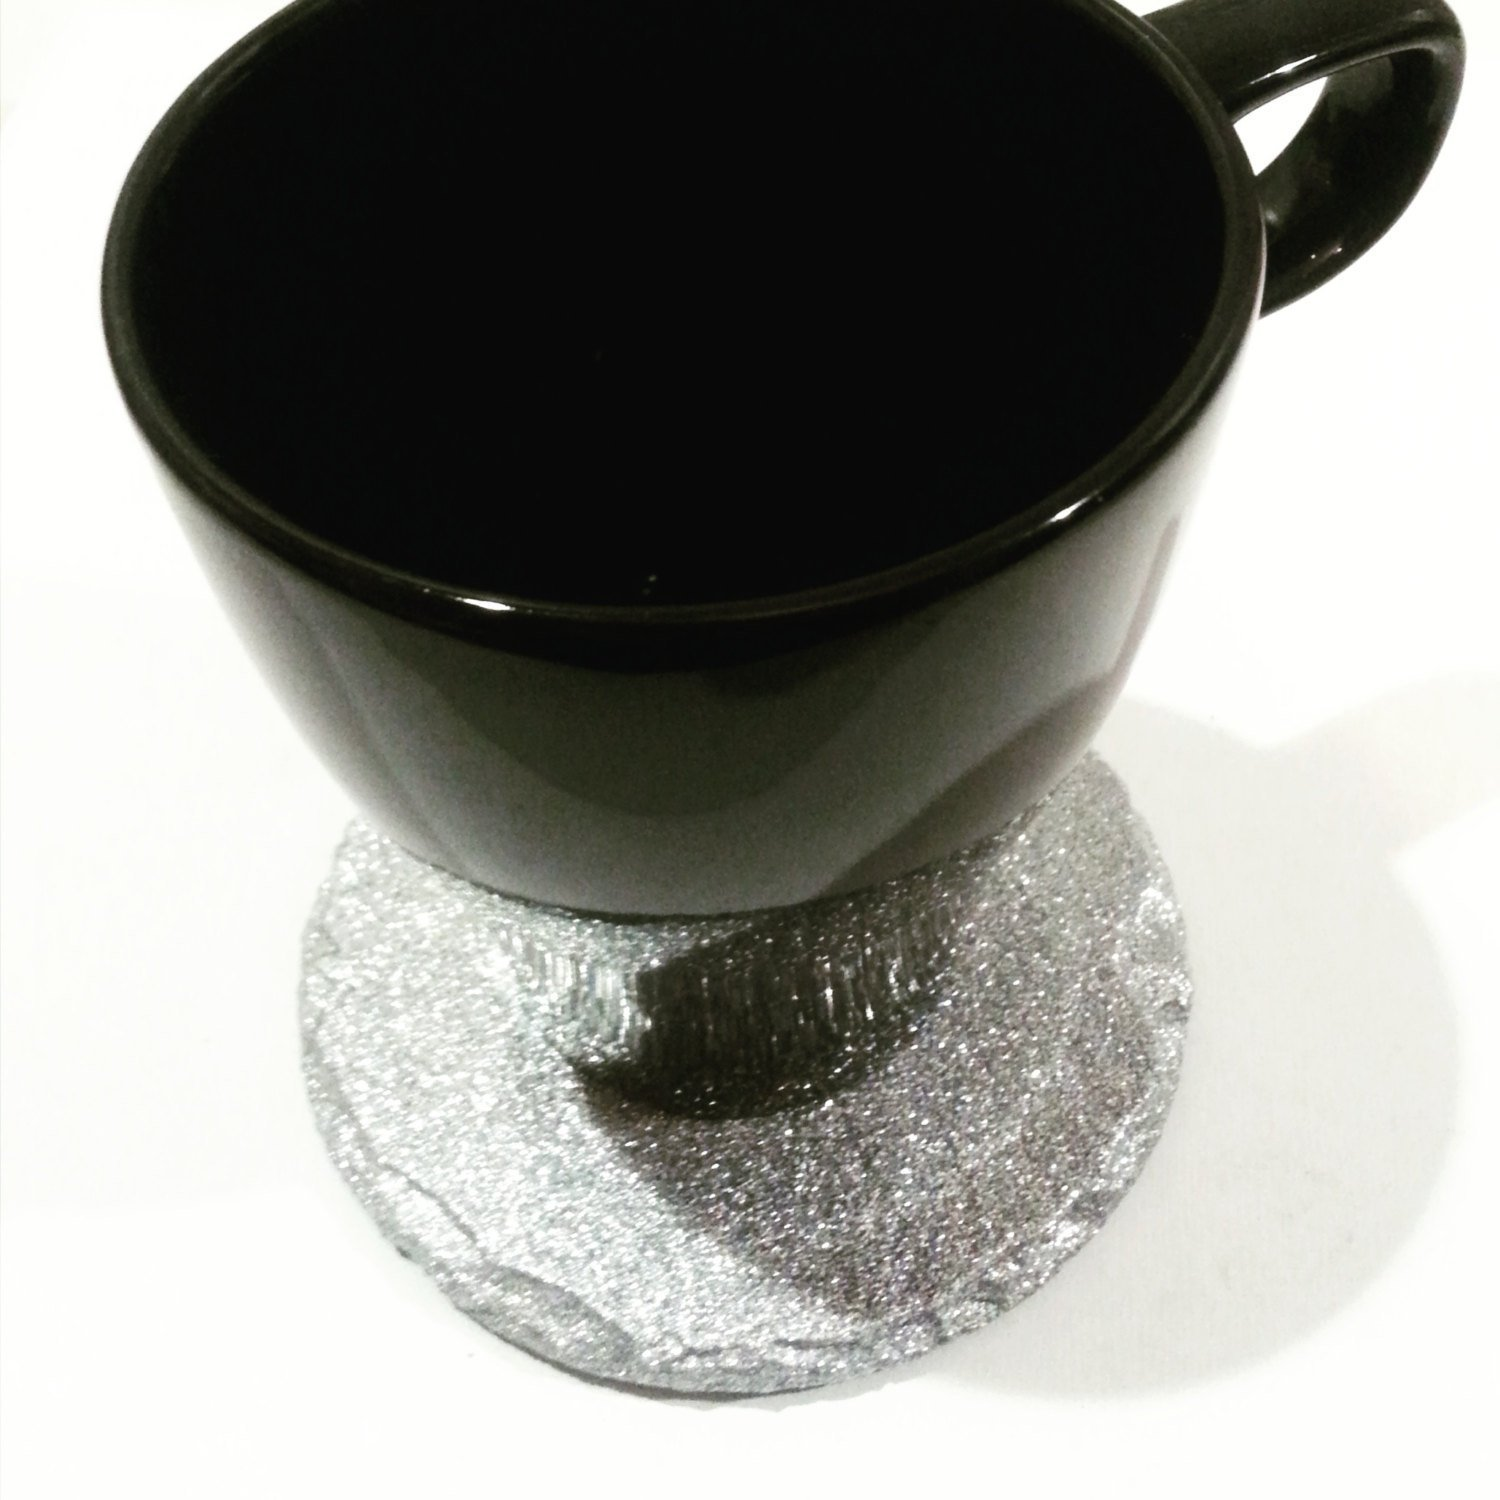 Round Renee Redesigns Handmade Silver Slate Glitter Coasters For Drinks 4 x 4 inches Unique 4-Piece Holiday Glitz Gift Set Protect Your Table Tops From Drink Rings and Spills